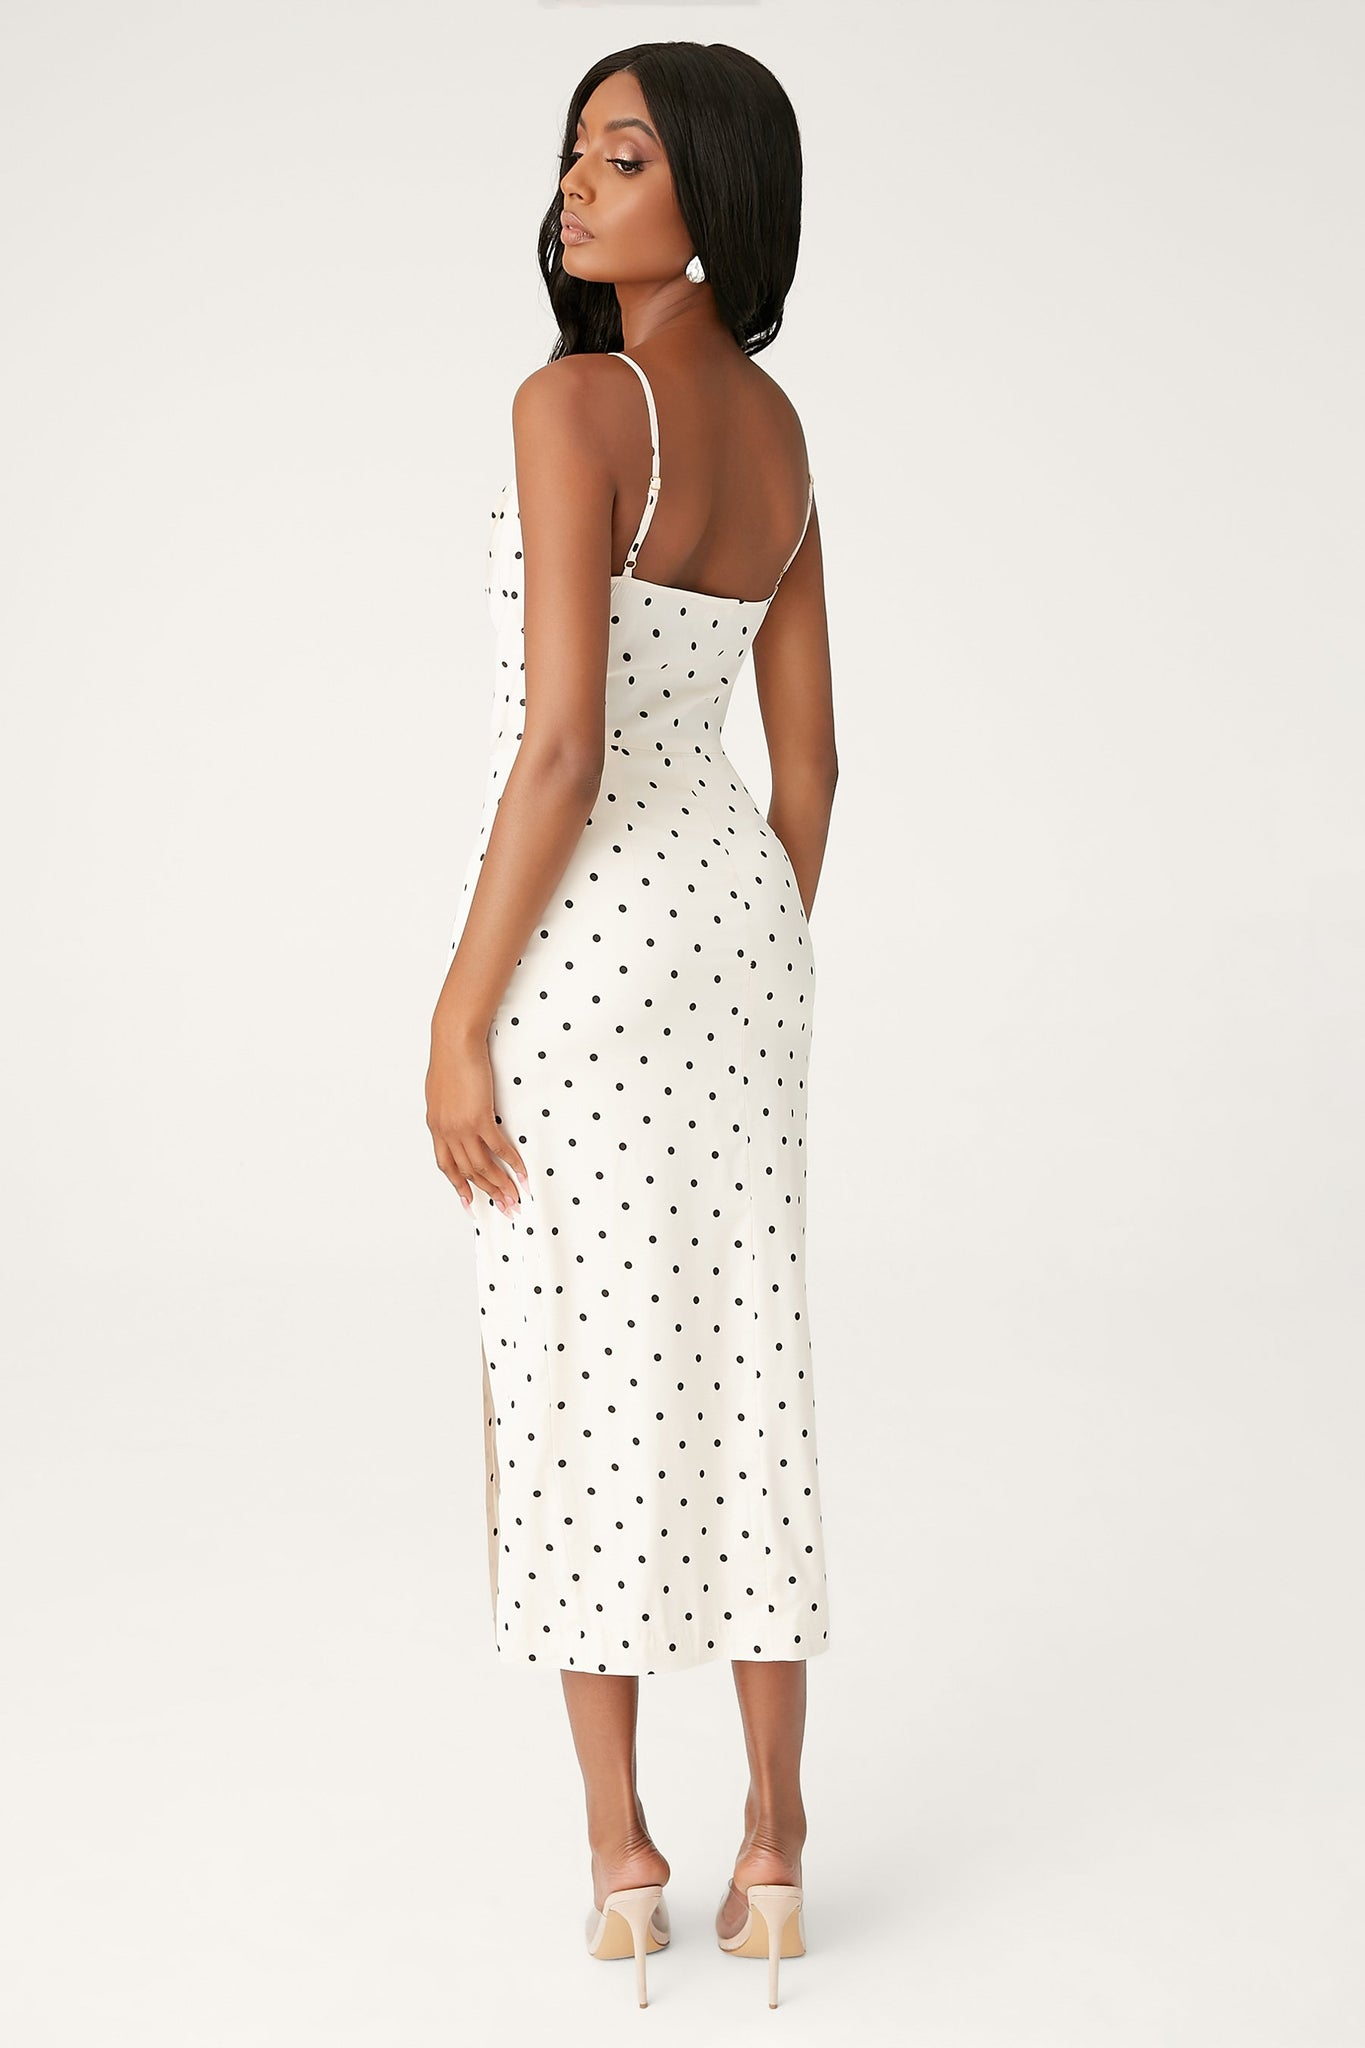 Kimberly Cowl Front Midi Dress - Polkadot - MESHKI